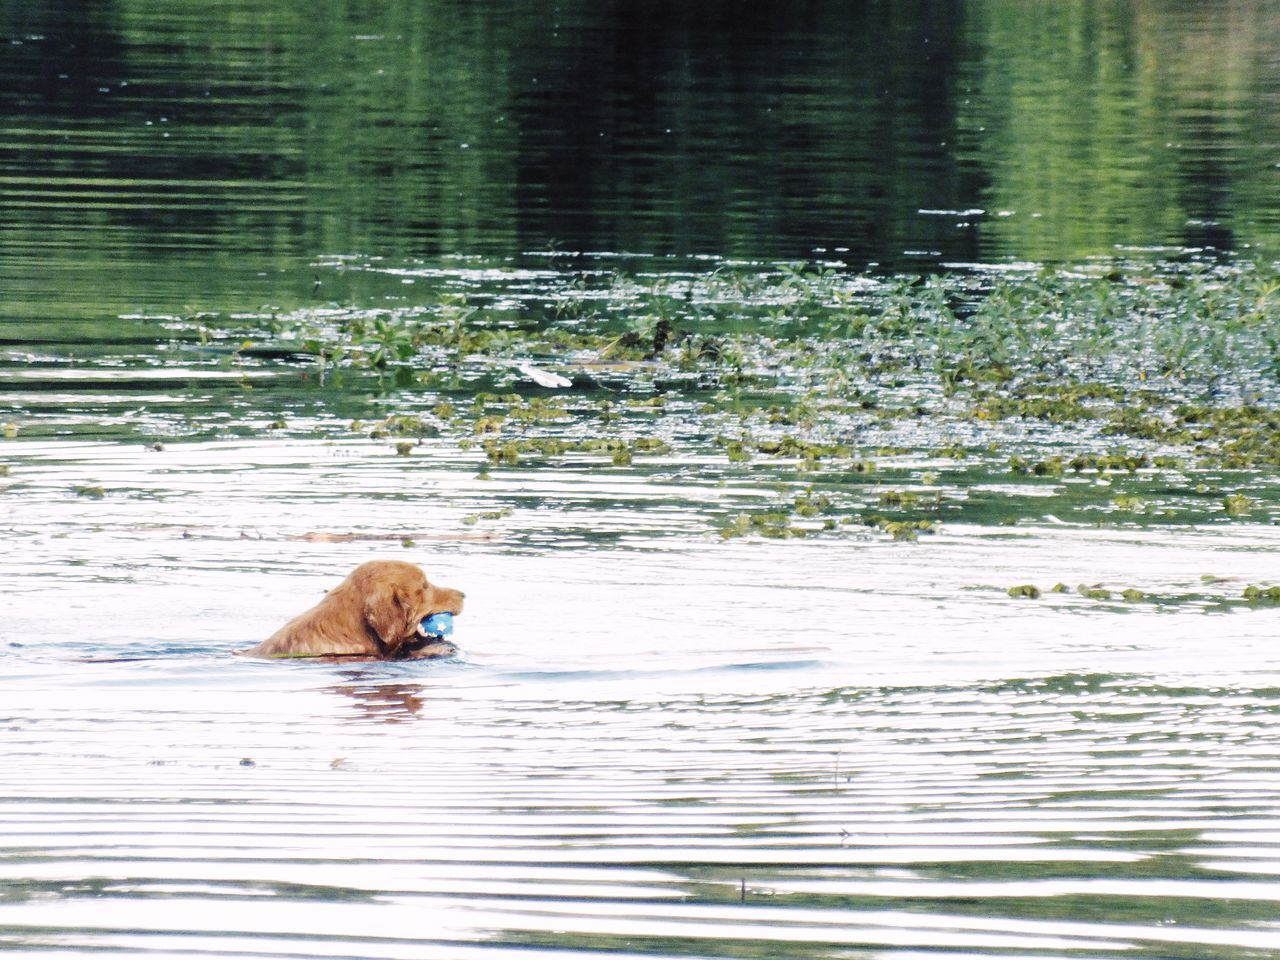 one animal, water, animal themes, waterfront, mammal, no people, nature, day, lake, outdoors, domestic animals, pets